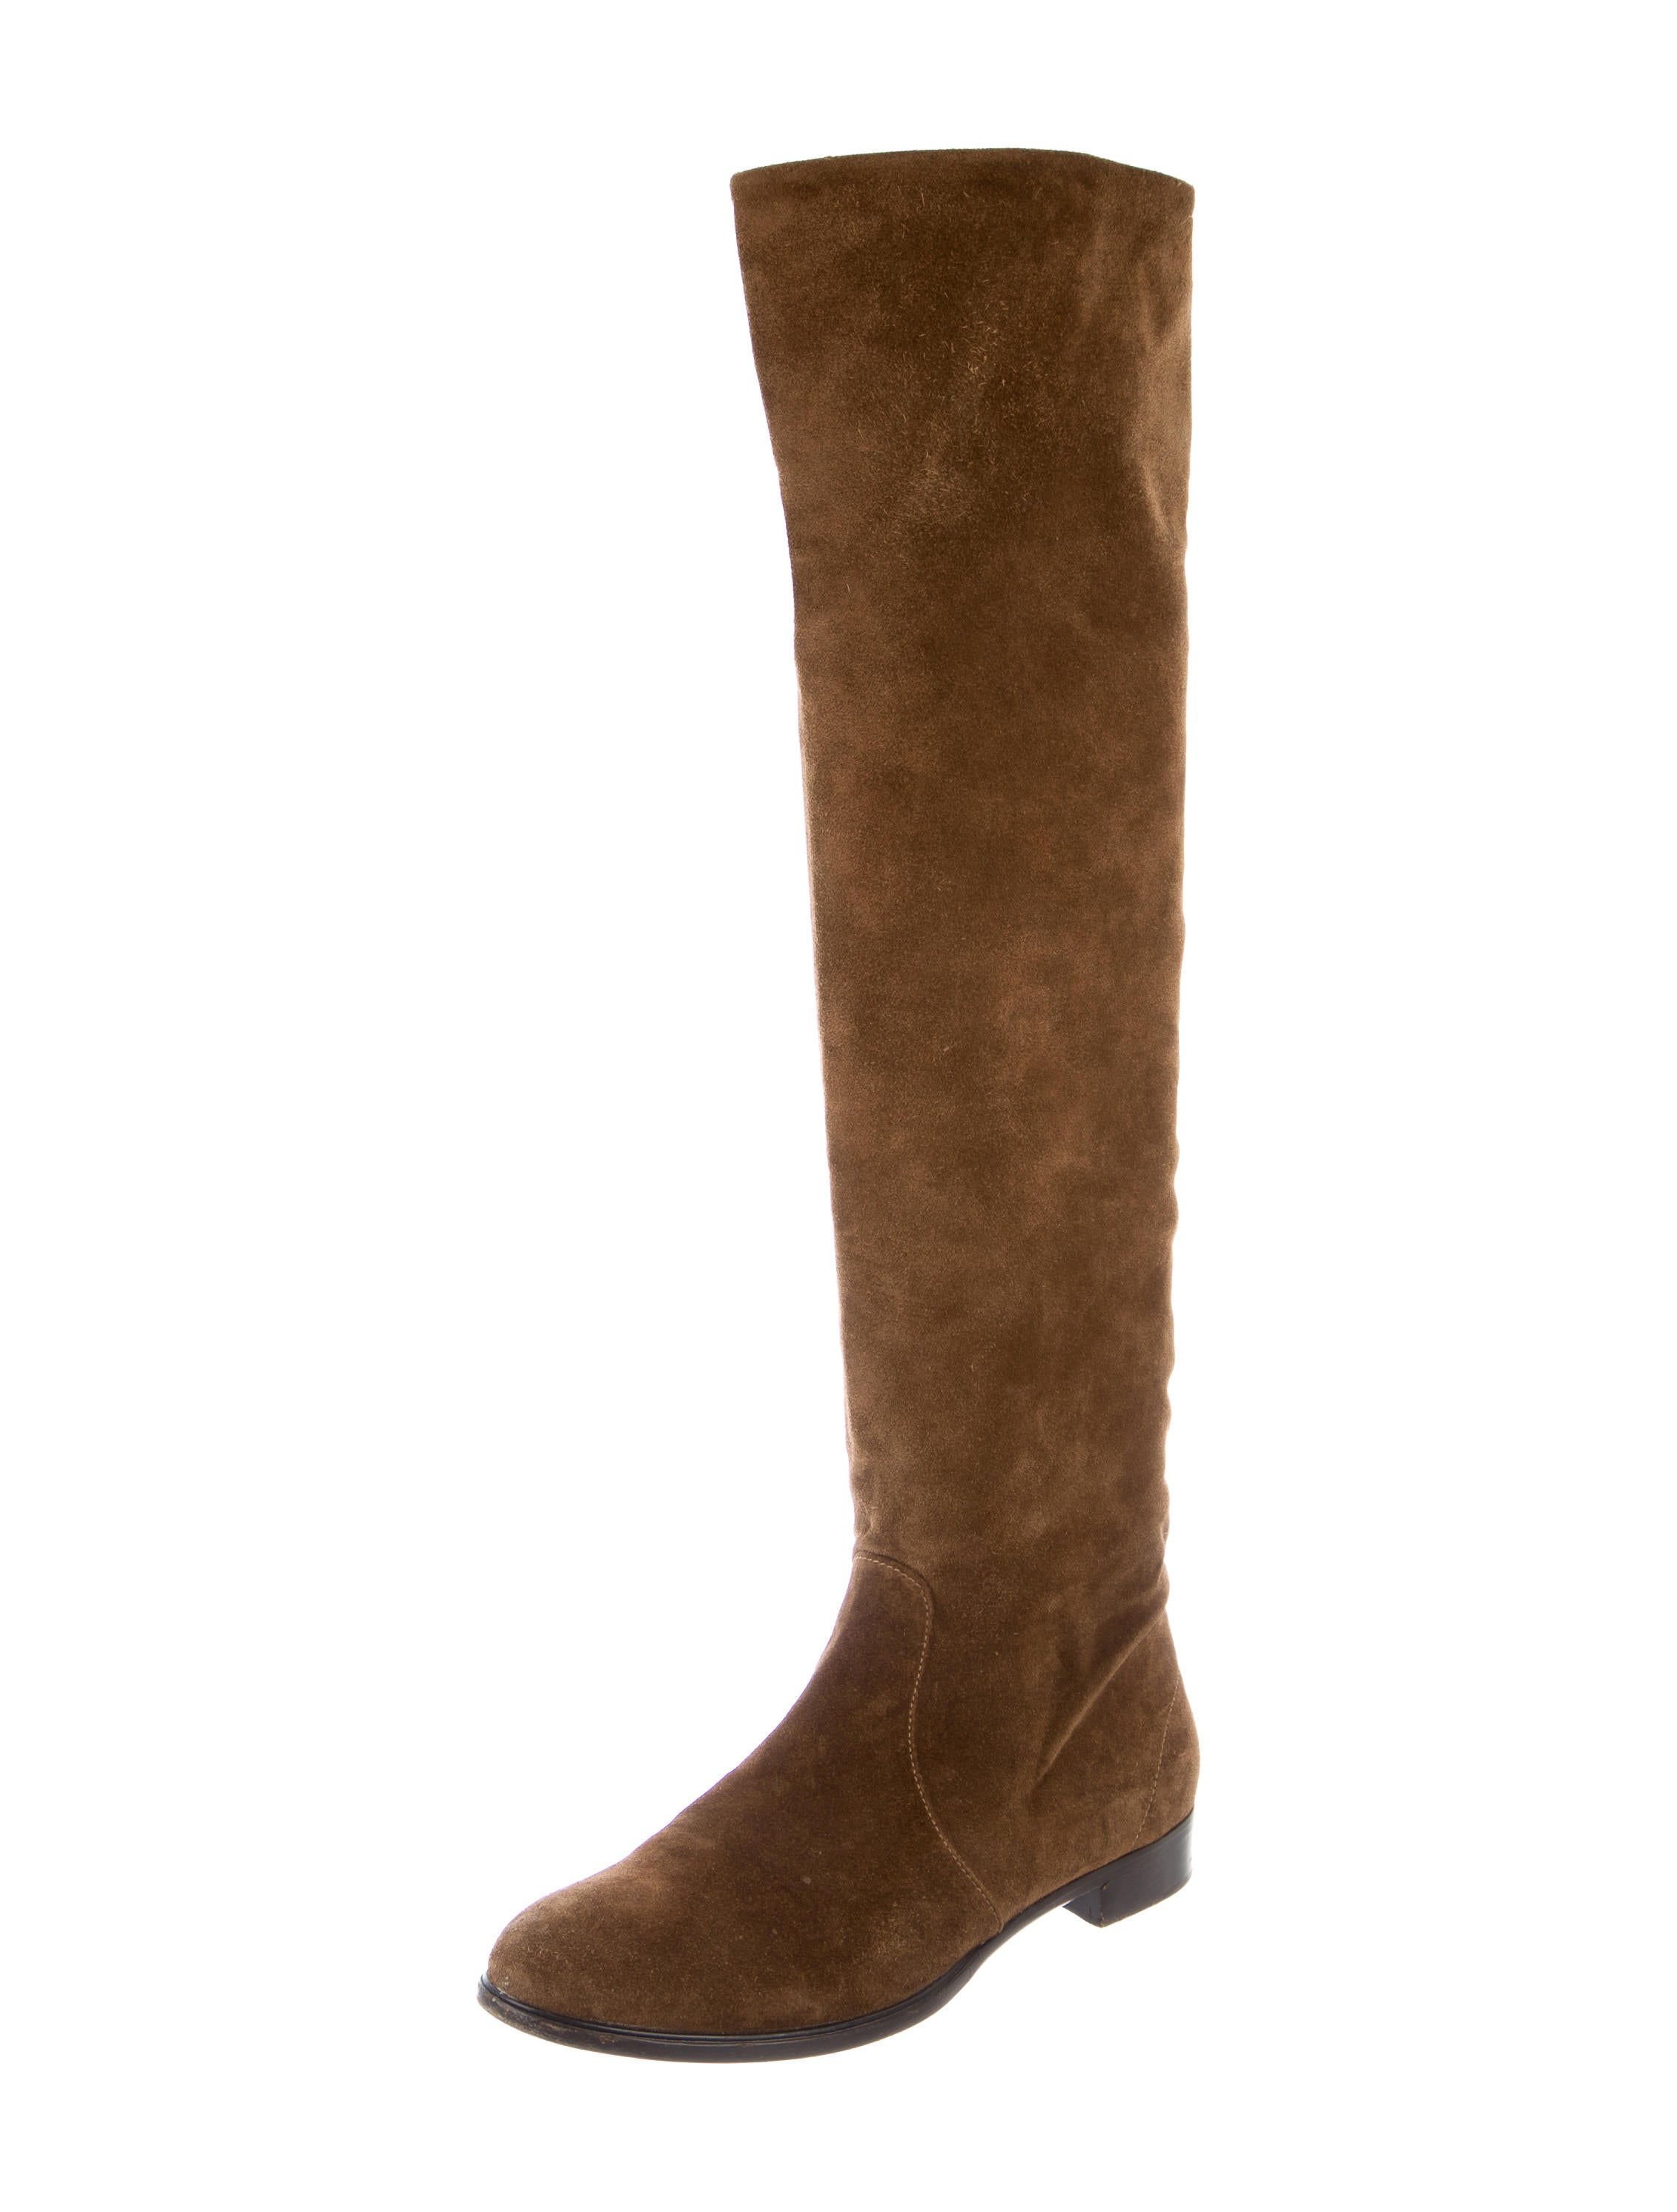 Find suede knee high boots at ShopStyle. Shop the latest collection of suede knee high boots from the most popular stores - all in one place.